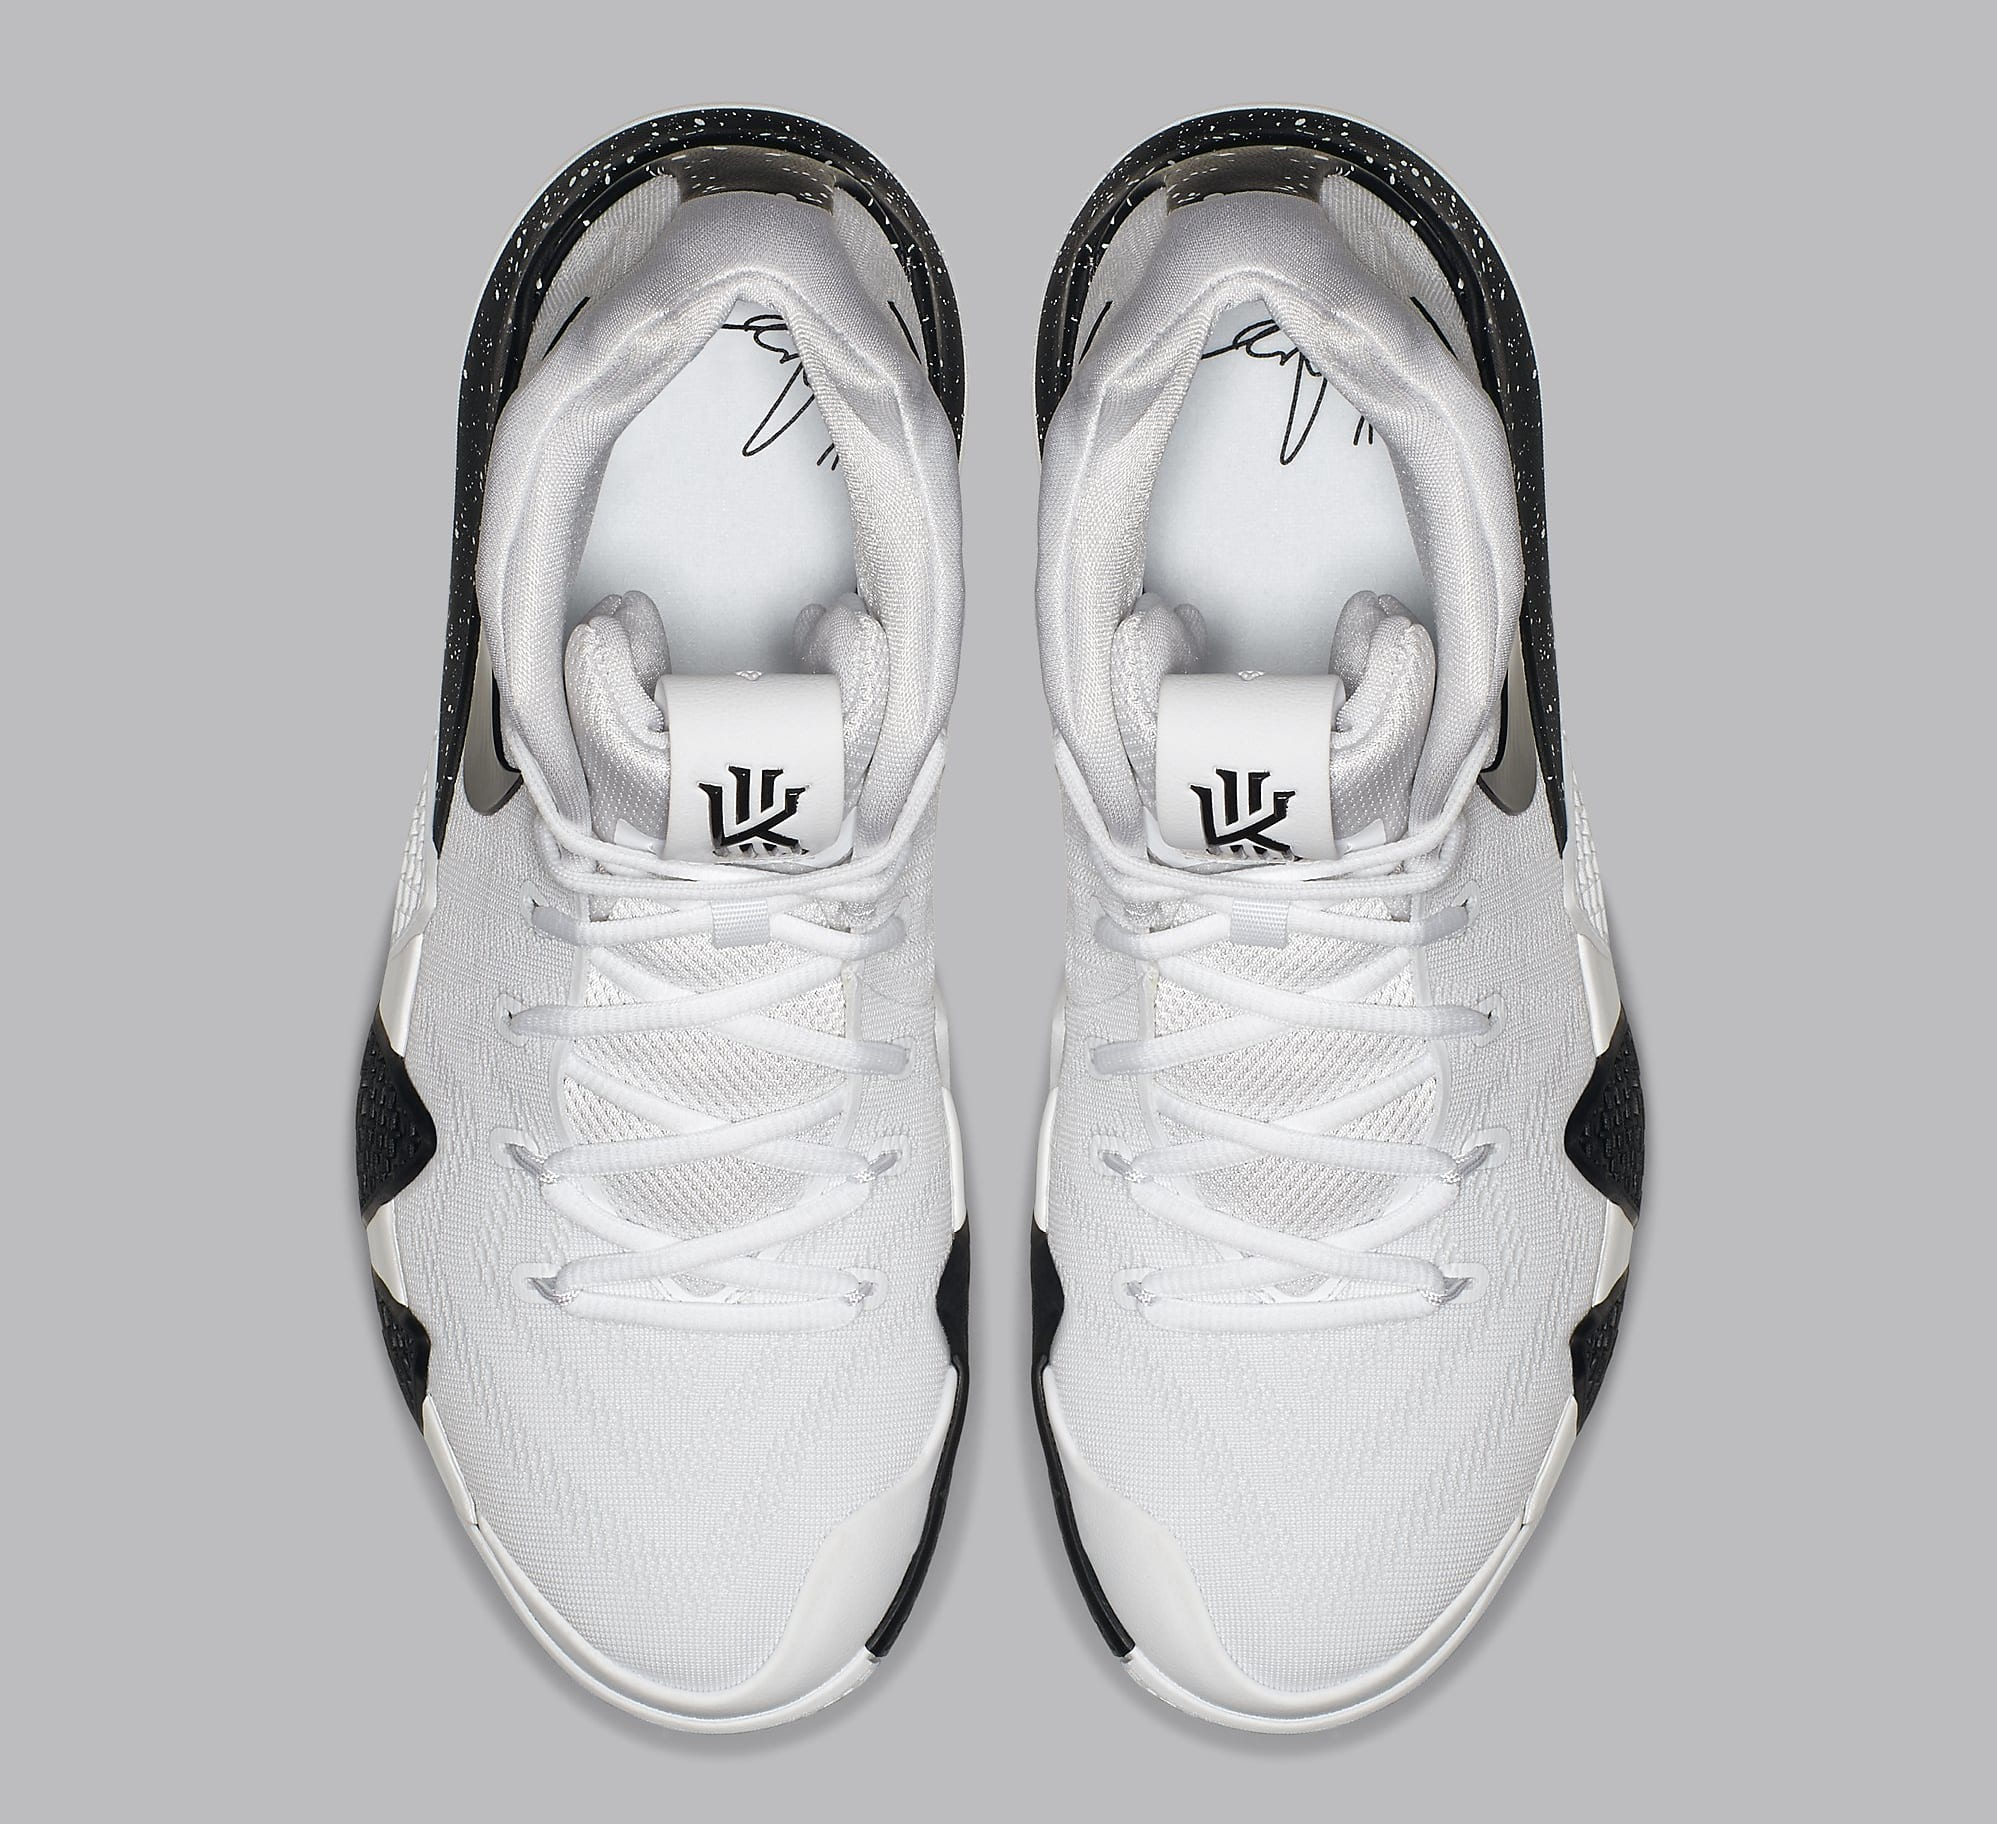 a09de1dfac03 ... purchase image via nike nike kyrie 4 white black release date av2296 100  top e9656 3958d